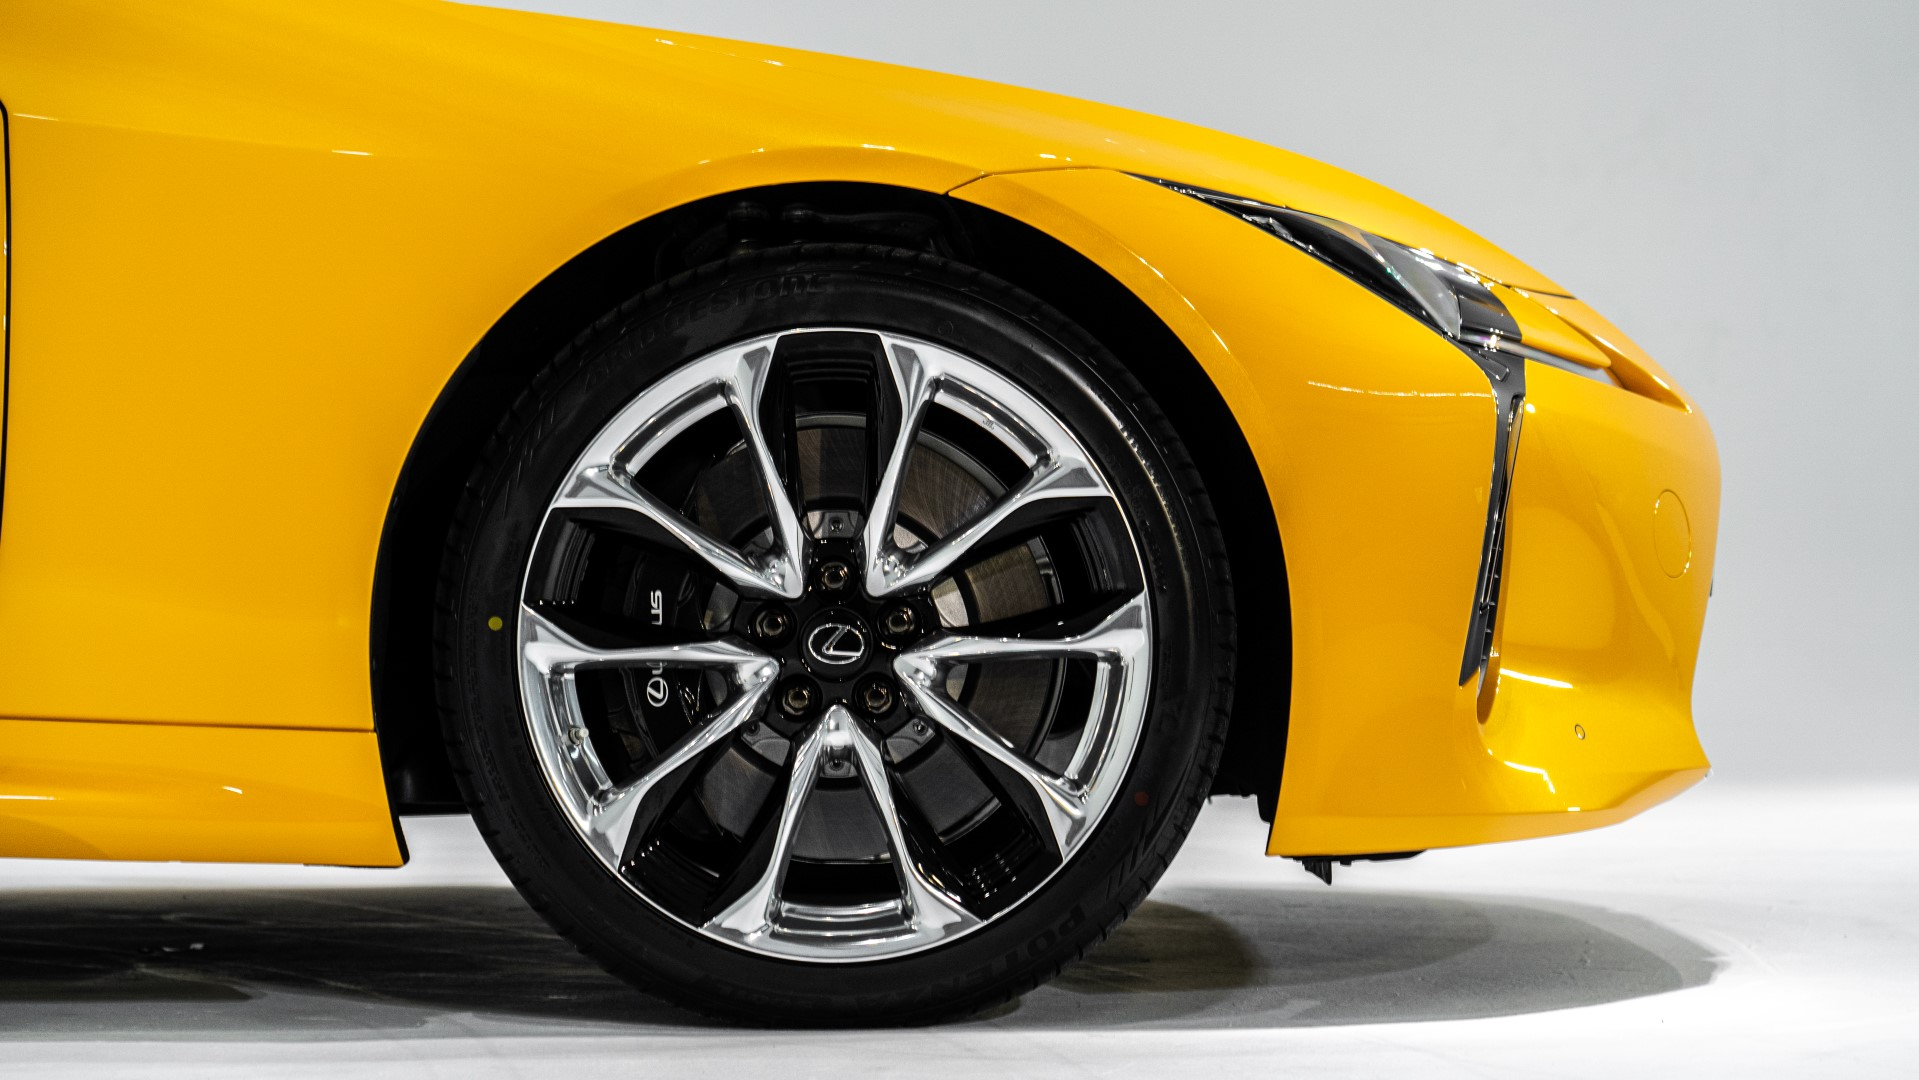 2020 Lexus LC 500 Convertible Rims